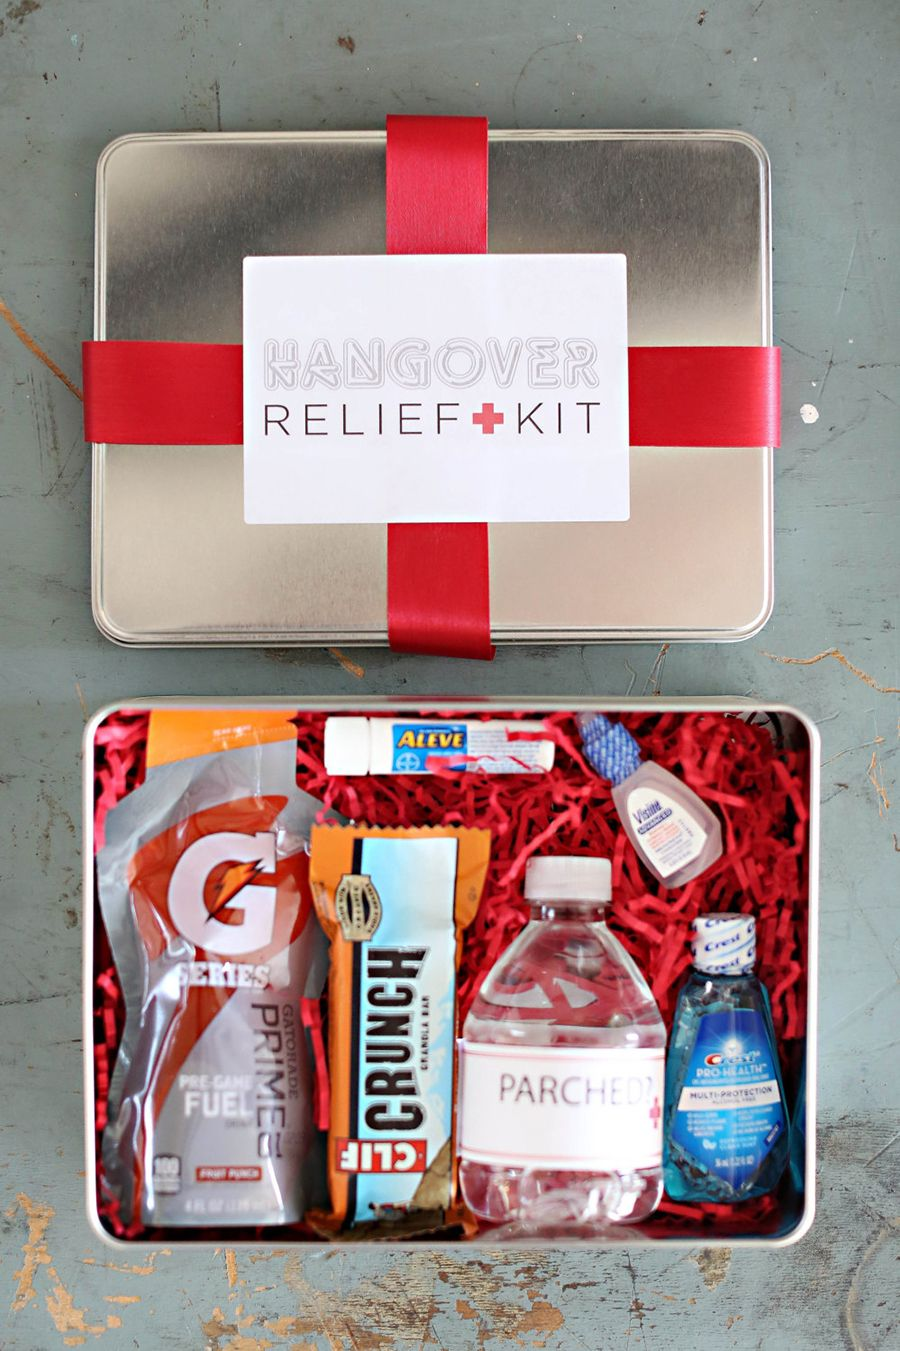 The Complete Guide To Picking The Perfect Wedding Favour Part 2 Wedding Hangover Hangover Kit 21st Presents